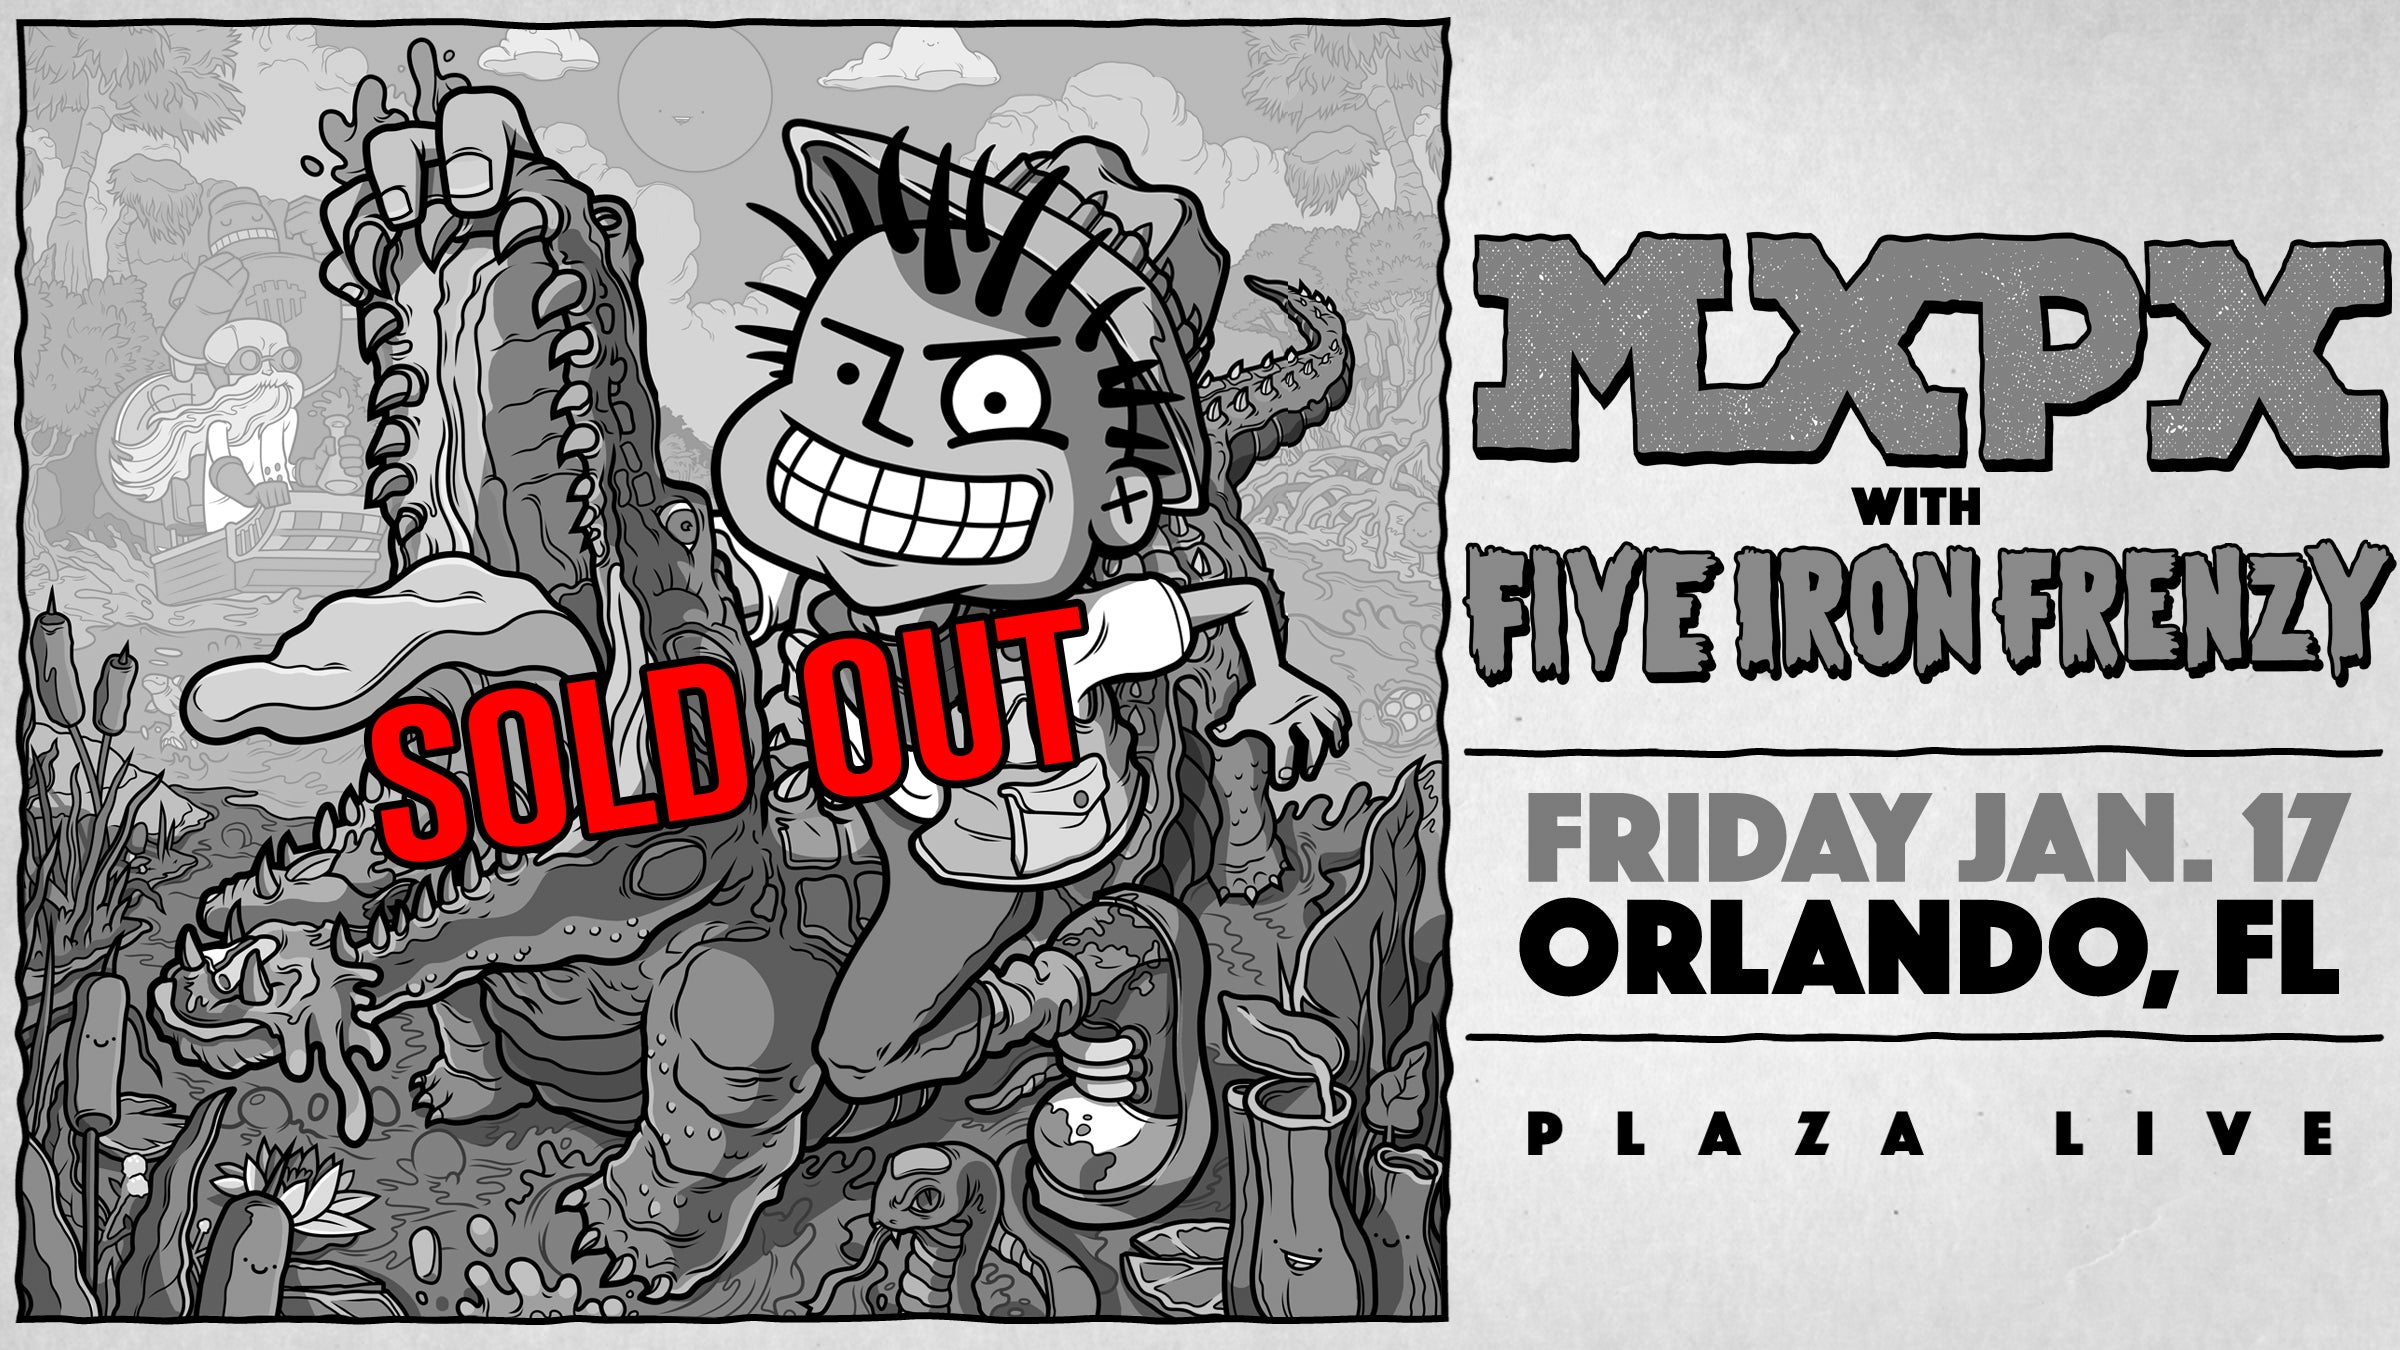 Friday, January 17 - Orlando, Florida - Plaza Live - MXPX w/ Five Iron Frenzy SOLD OUT!